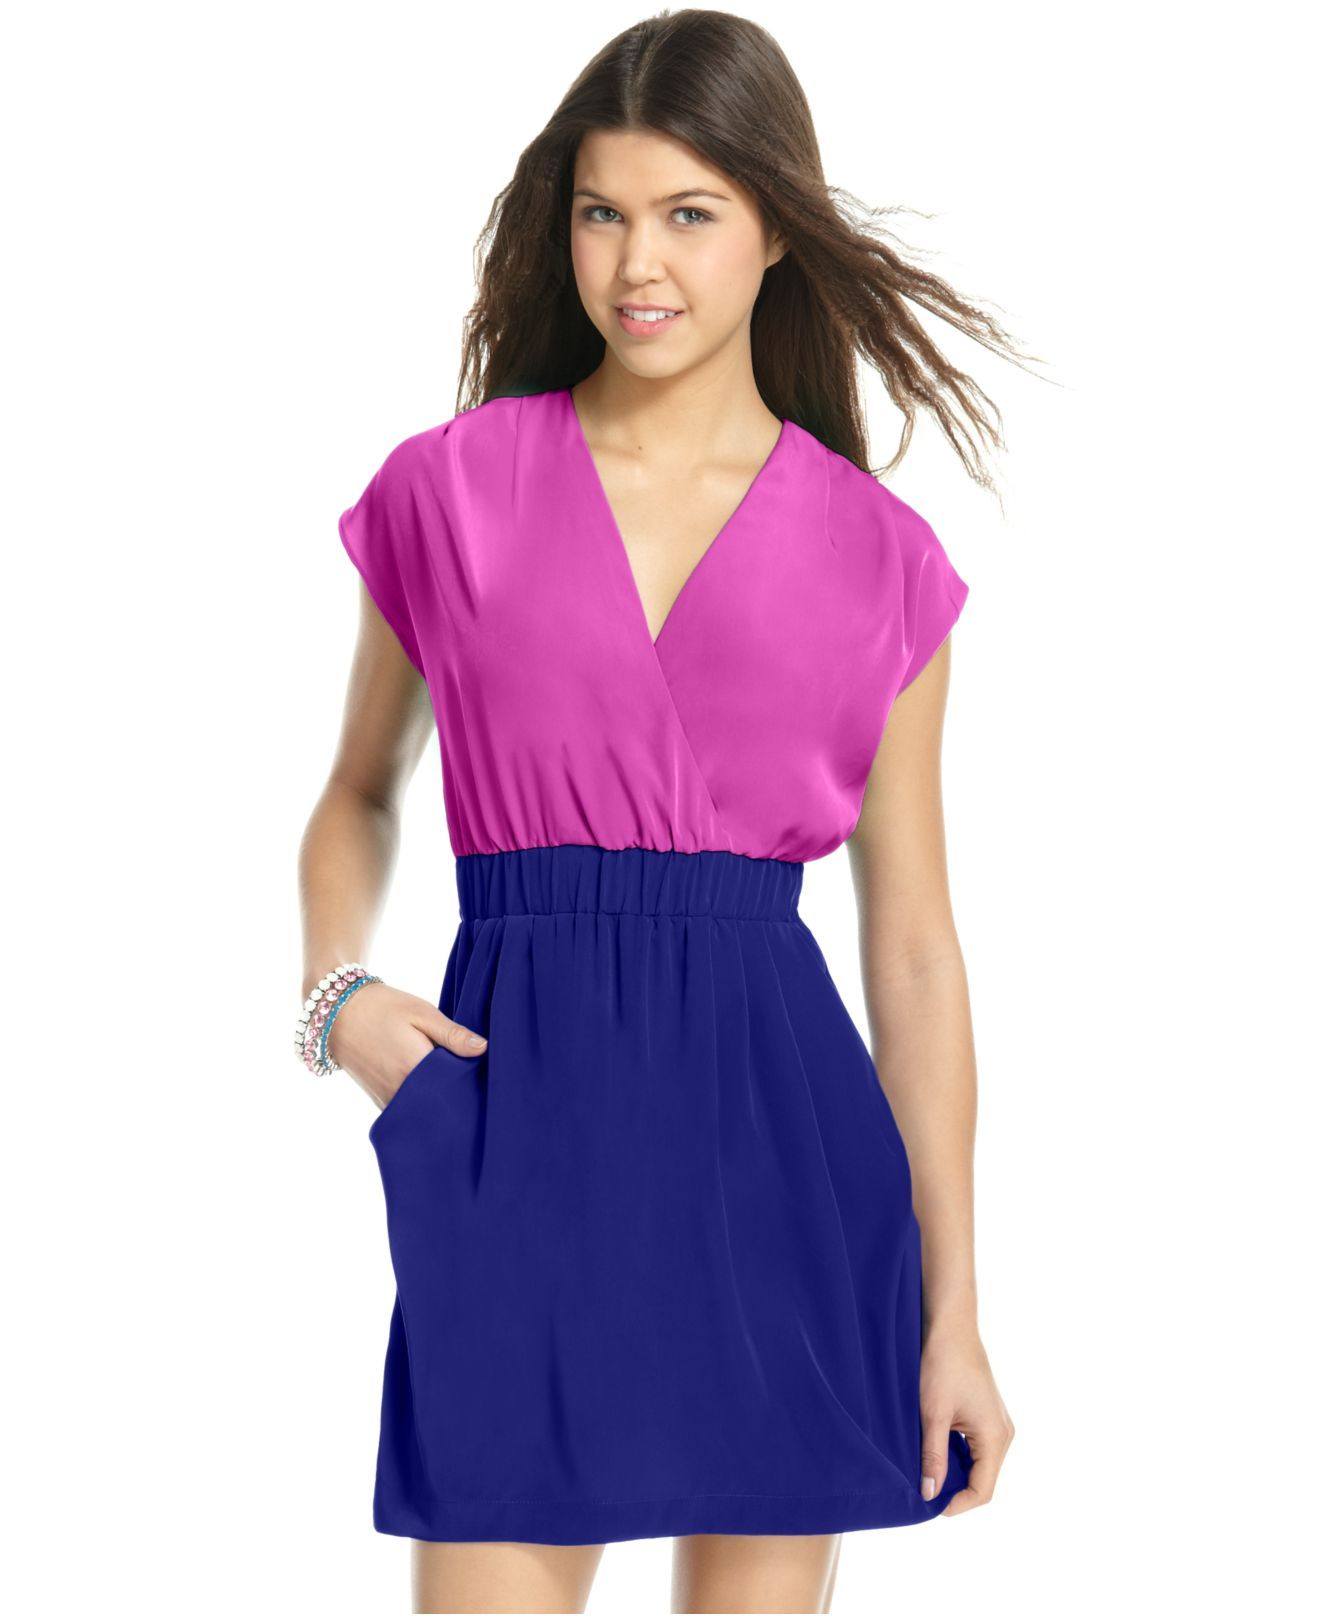 Ali & Kris Dress, Short Sleeve Colorblocked - Juniors Dresses ...